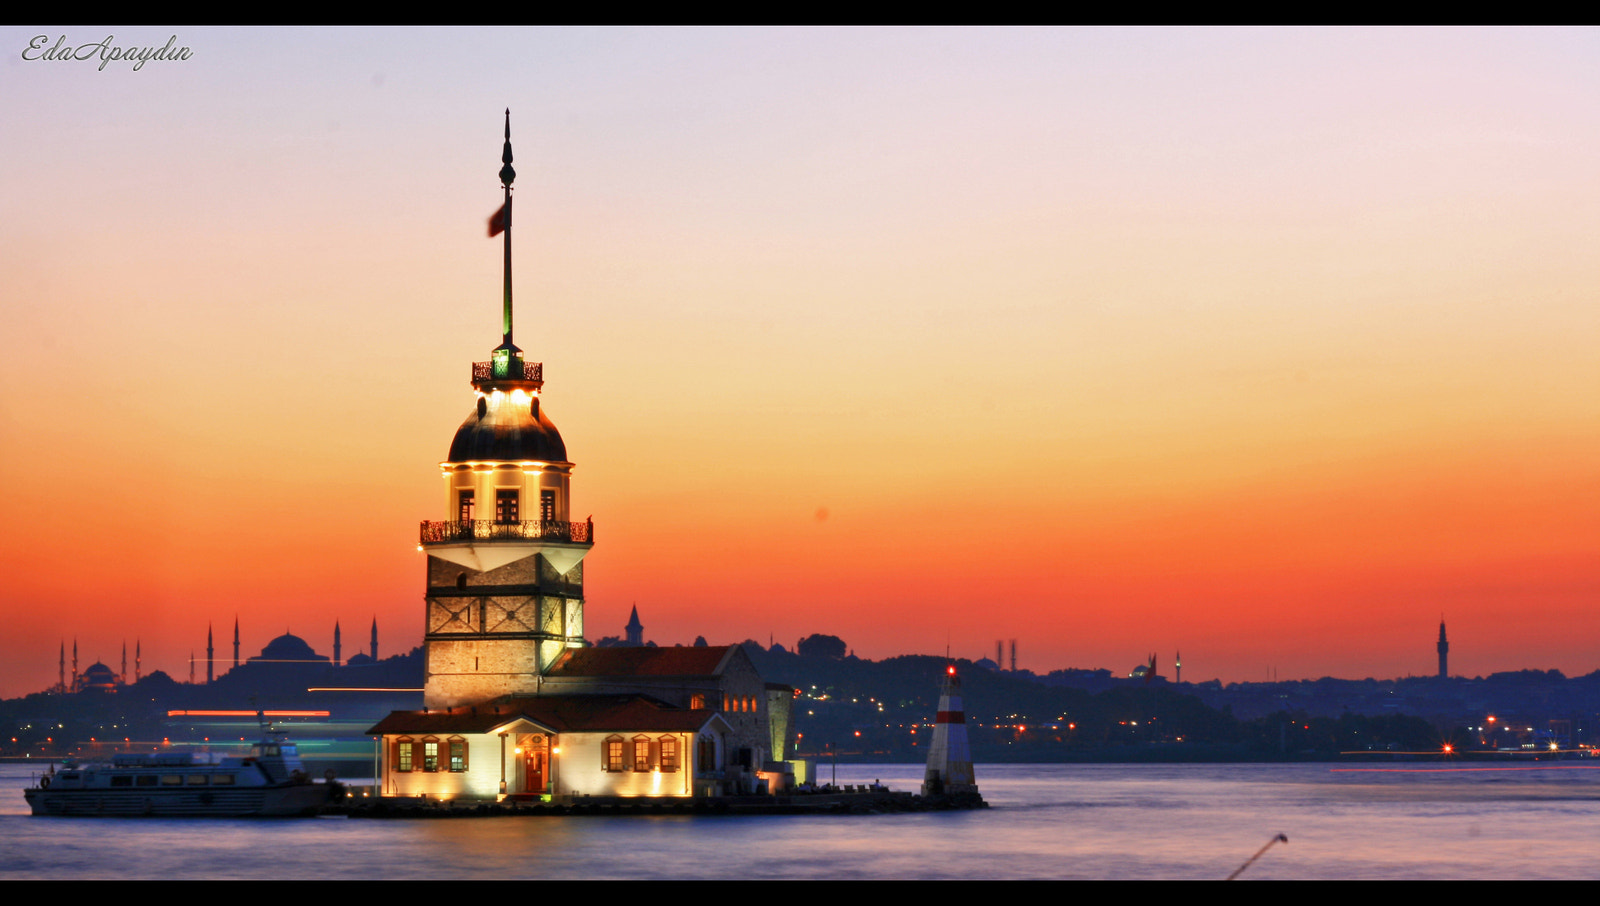 Photograph The Maiden's Tower by Eda Apaydın on 500px